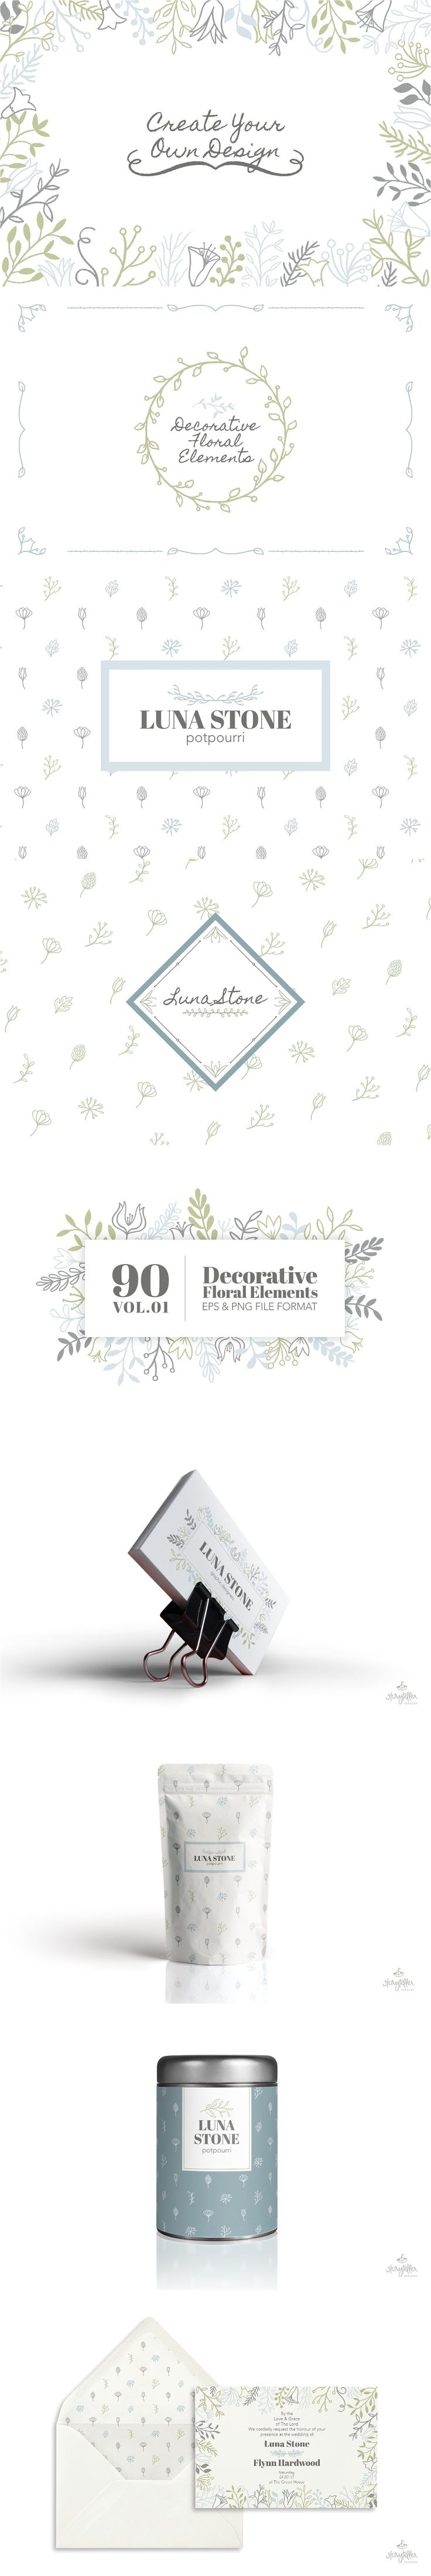 90 Decorative Floral Elements Vol.01 by Storyteller Imagery on @creativemarket